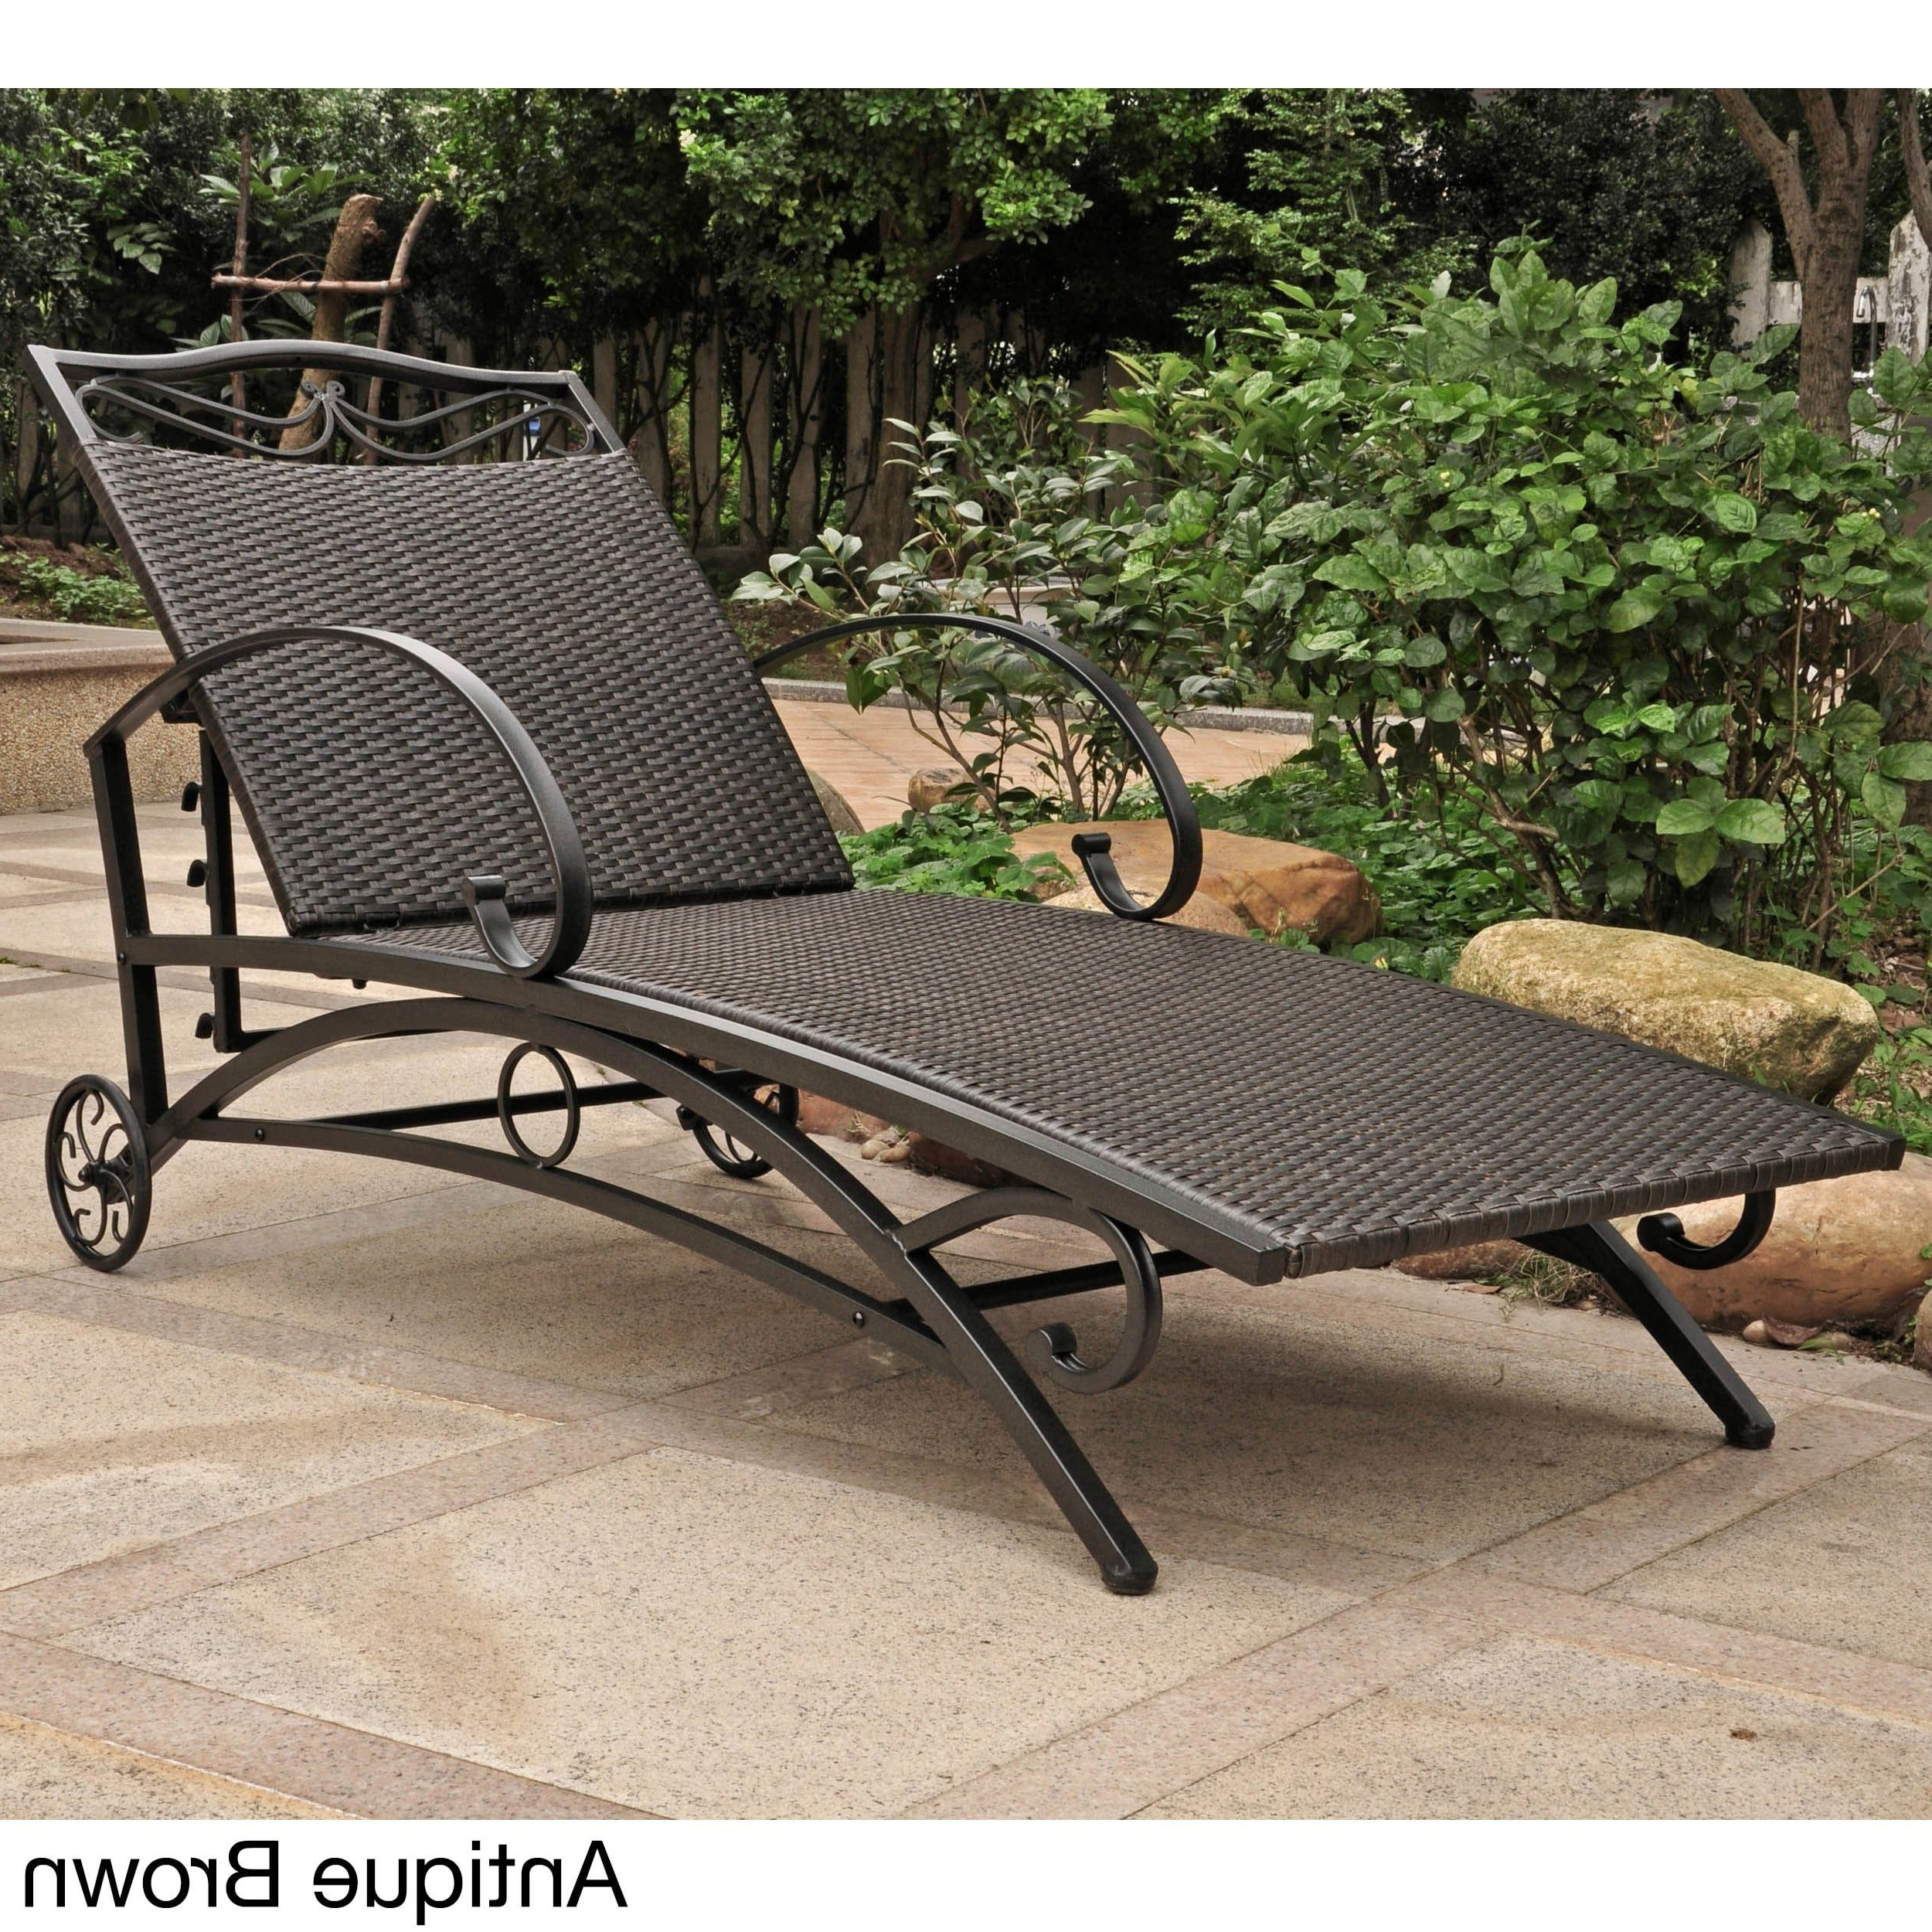 International Caravan Valencia Resin Wicker/ Steel Frame For Current Resin Wicker Aluminum Multi Position Chaise Lounges (View 10 of 25)